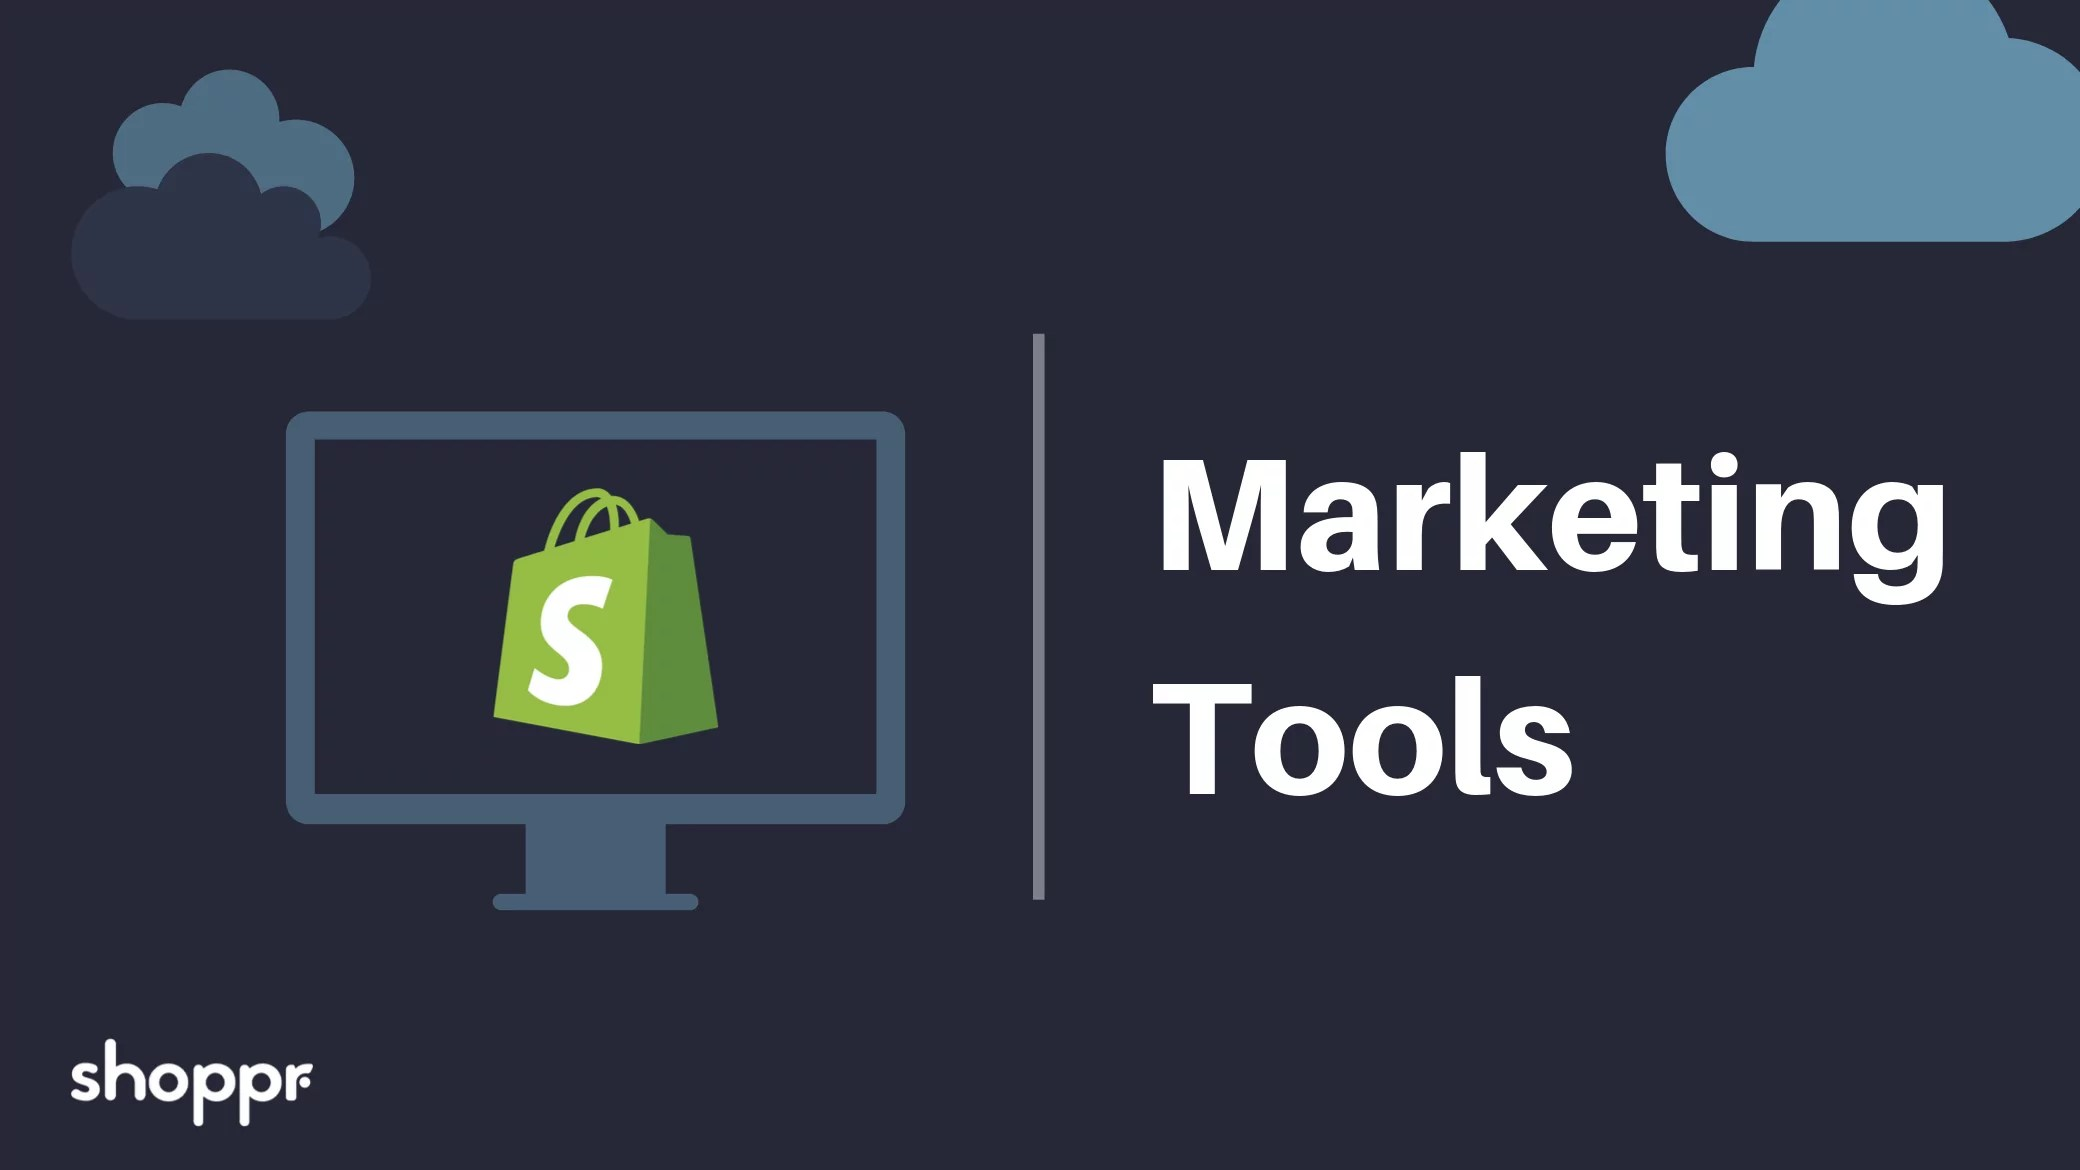 Shoppr's Guide on Marketing Tools For Shopify Stores